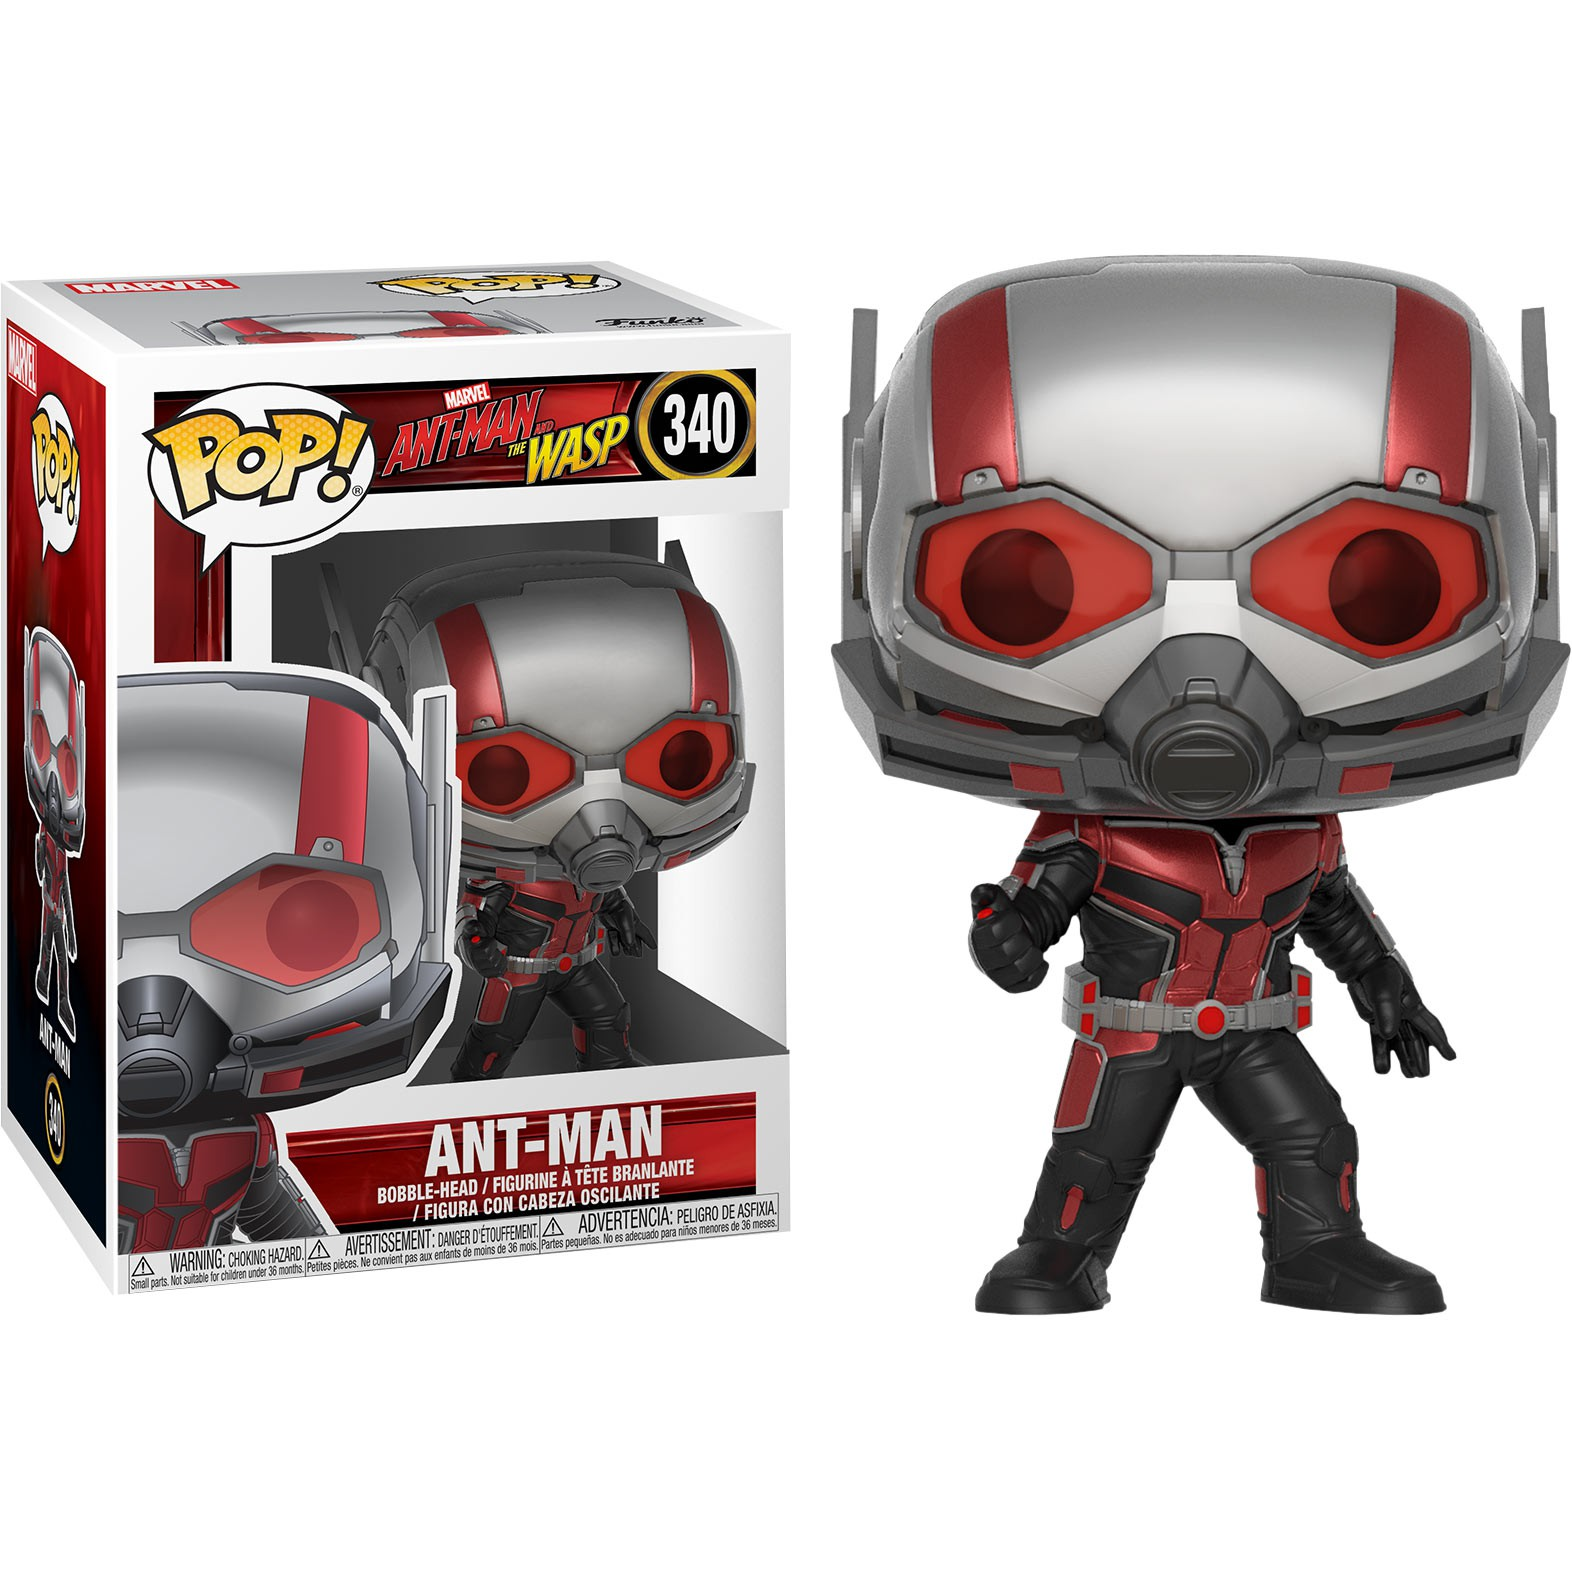 Ant-Man Movie Funko Pop Vinyl Figure